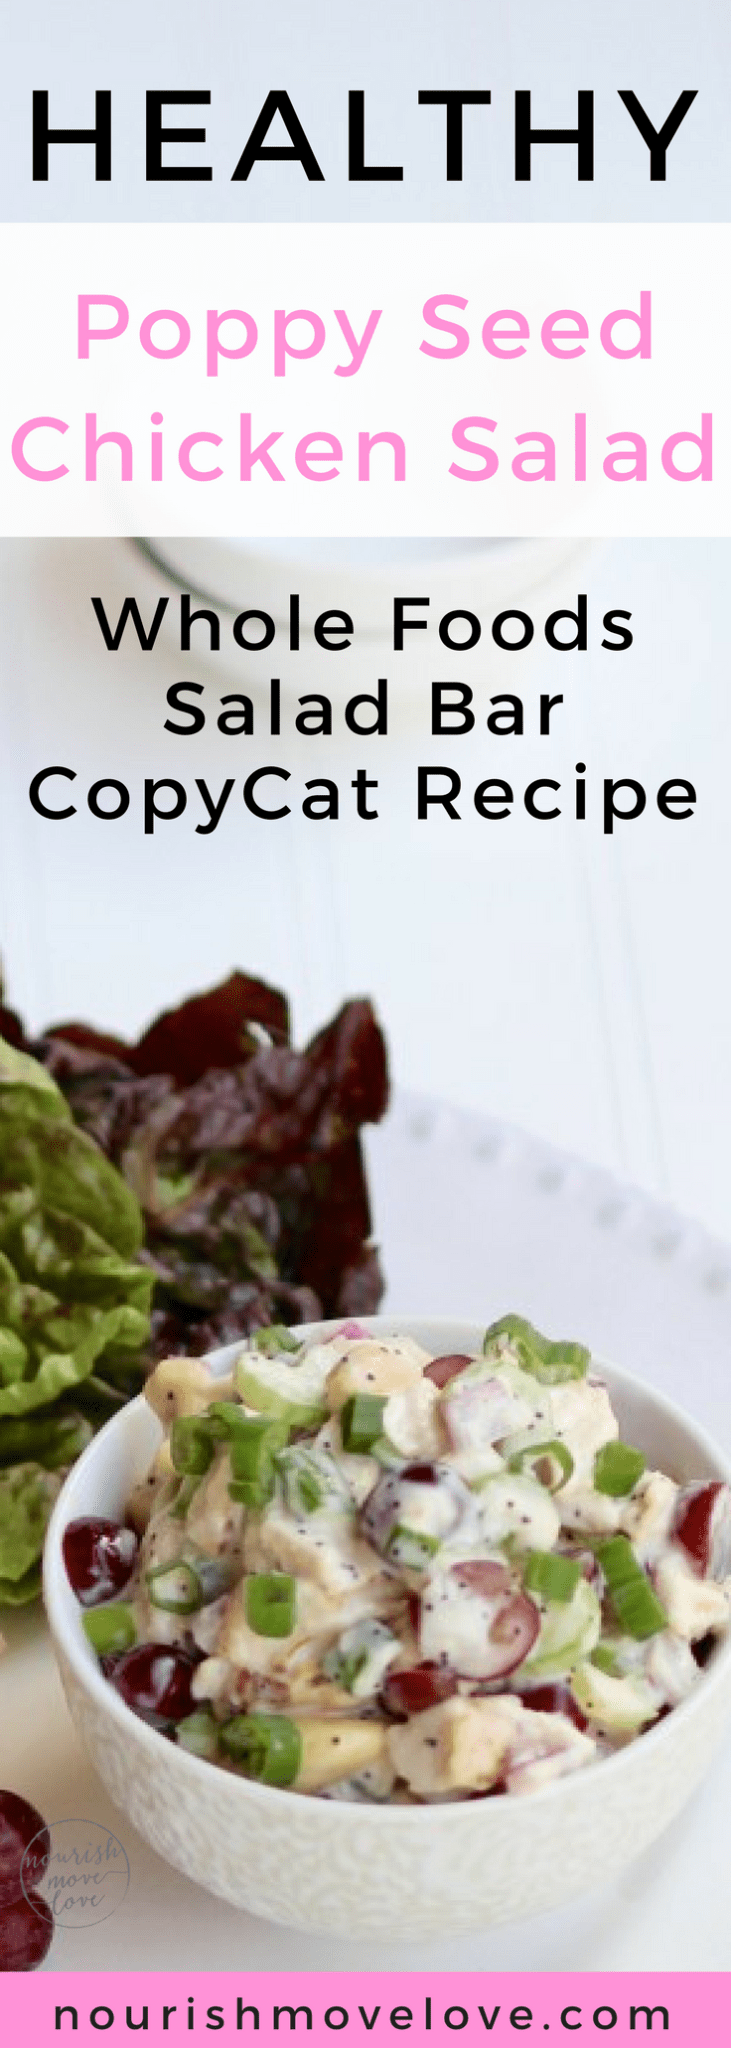 Healthy Poppy Seed Chicken Salad Whole Foods Salad Bar Copycat Recipe | www.nourishmovelove.com